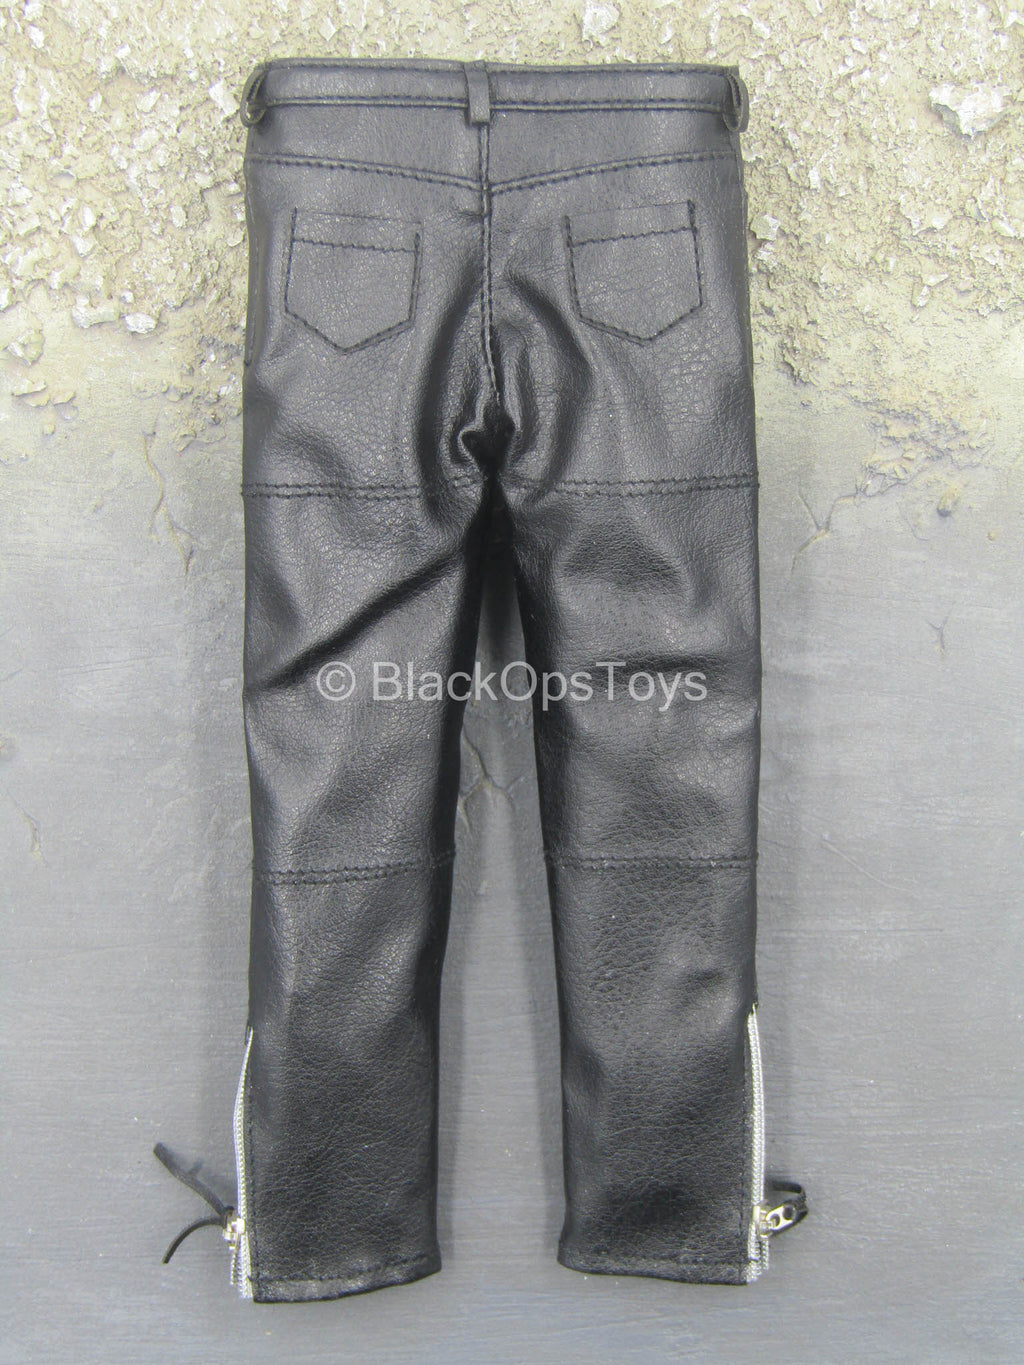 Terminator - Biker Apparel - Black Leather Like Pants